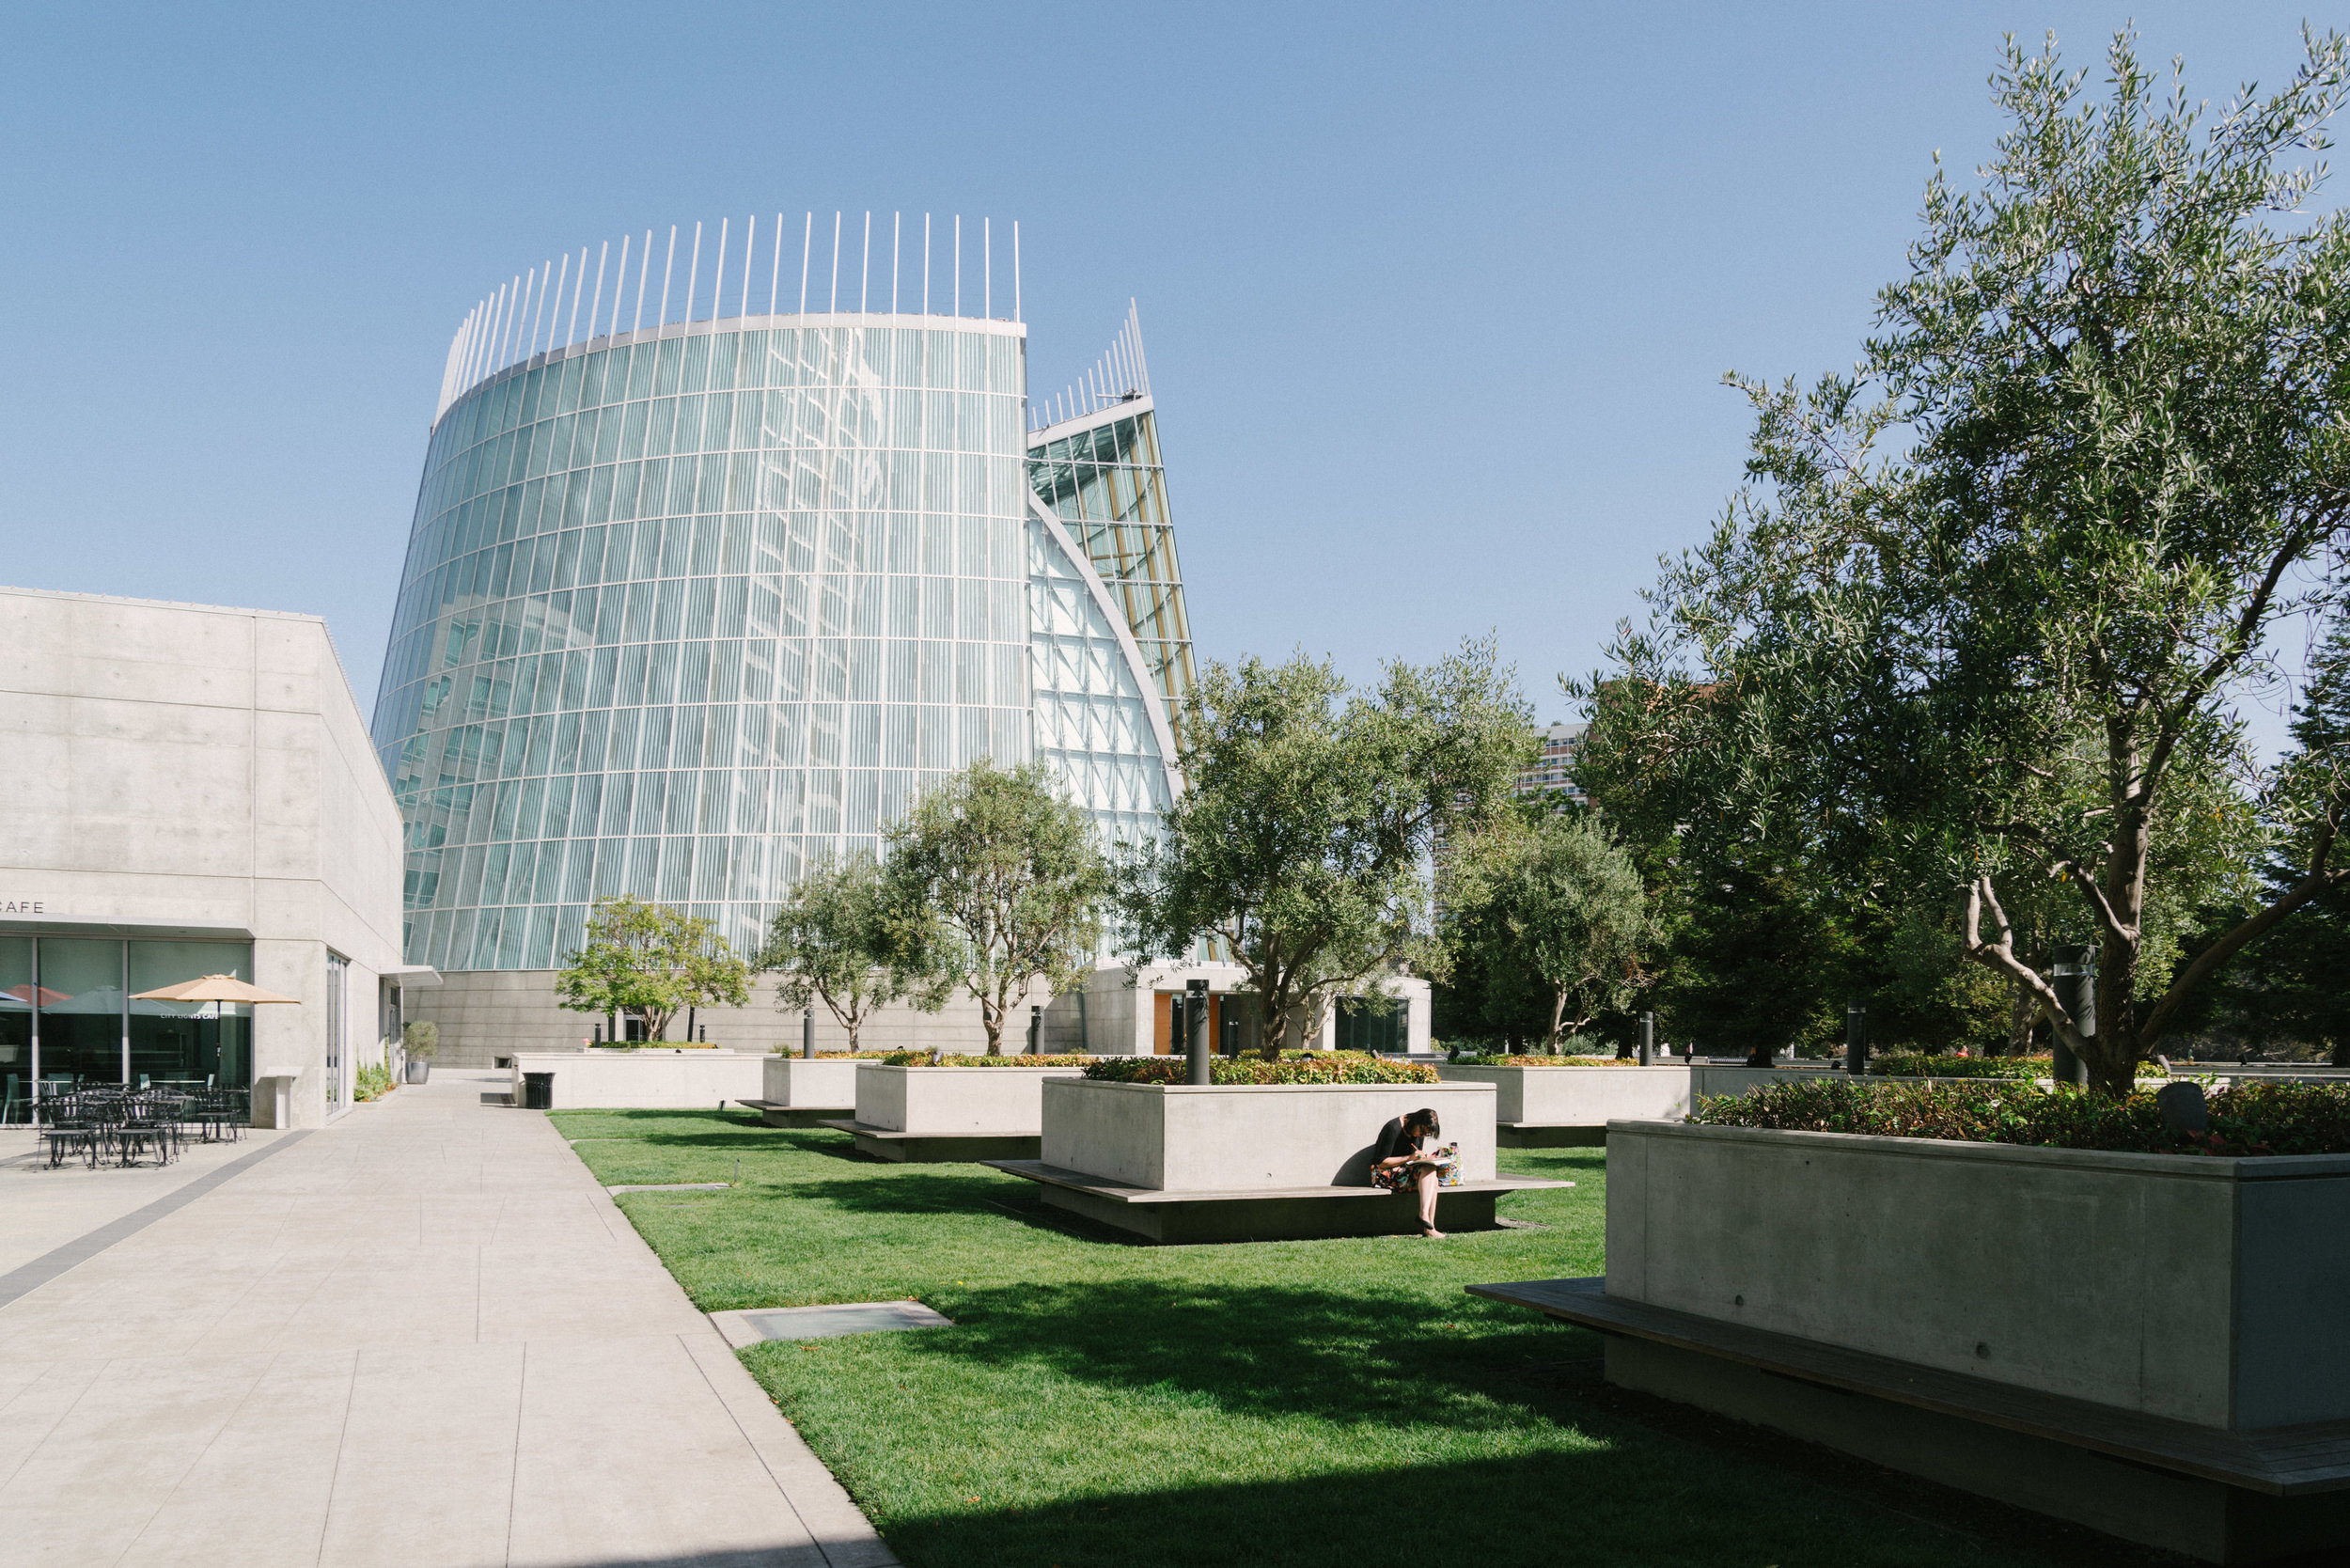 20171003_Cathedral of Christ the Light_DTKM_5057.jpg